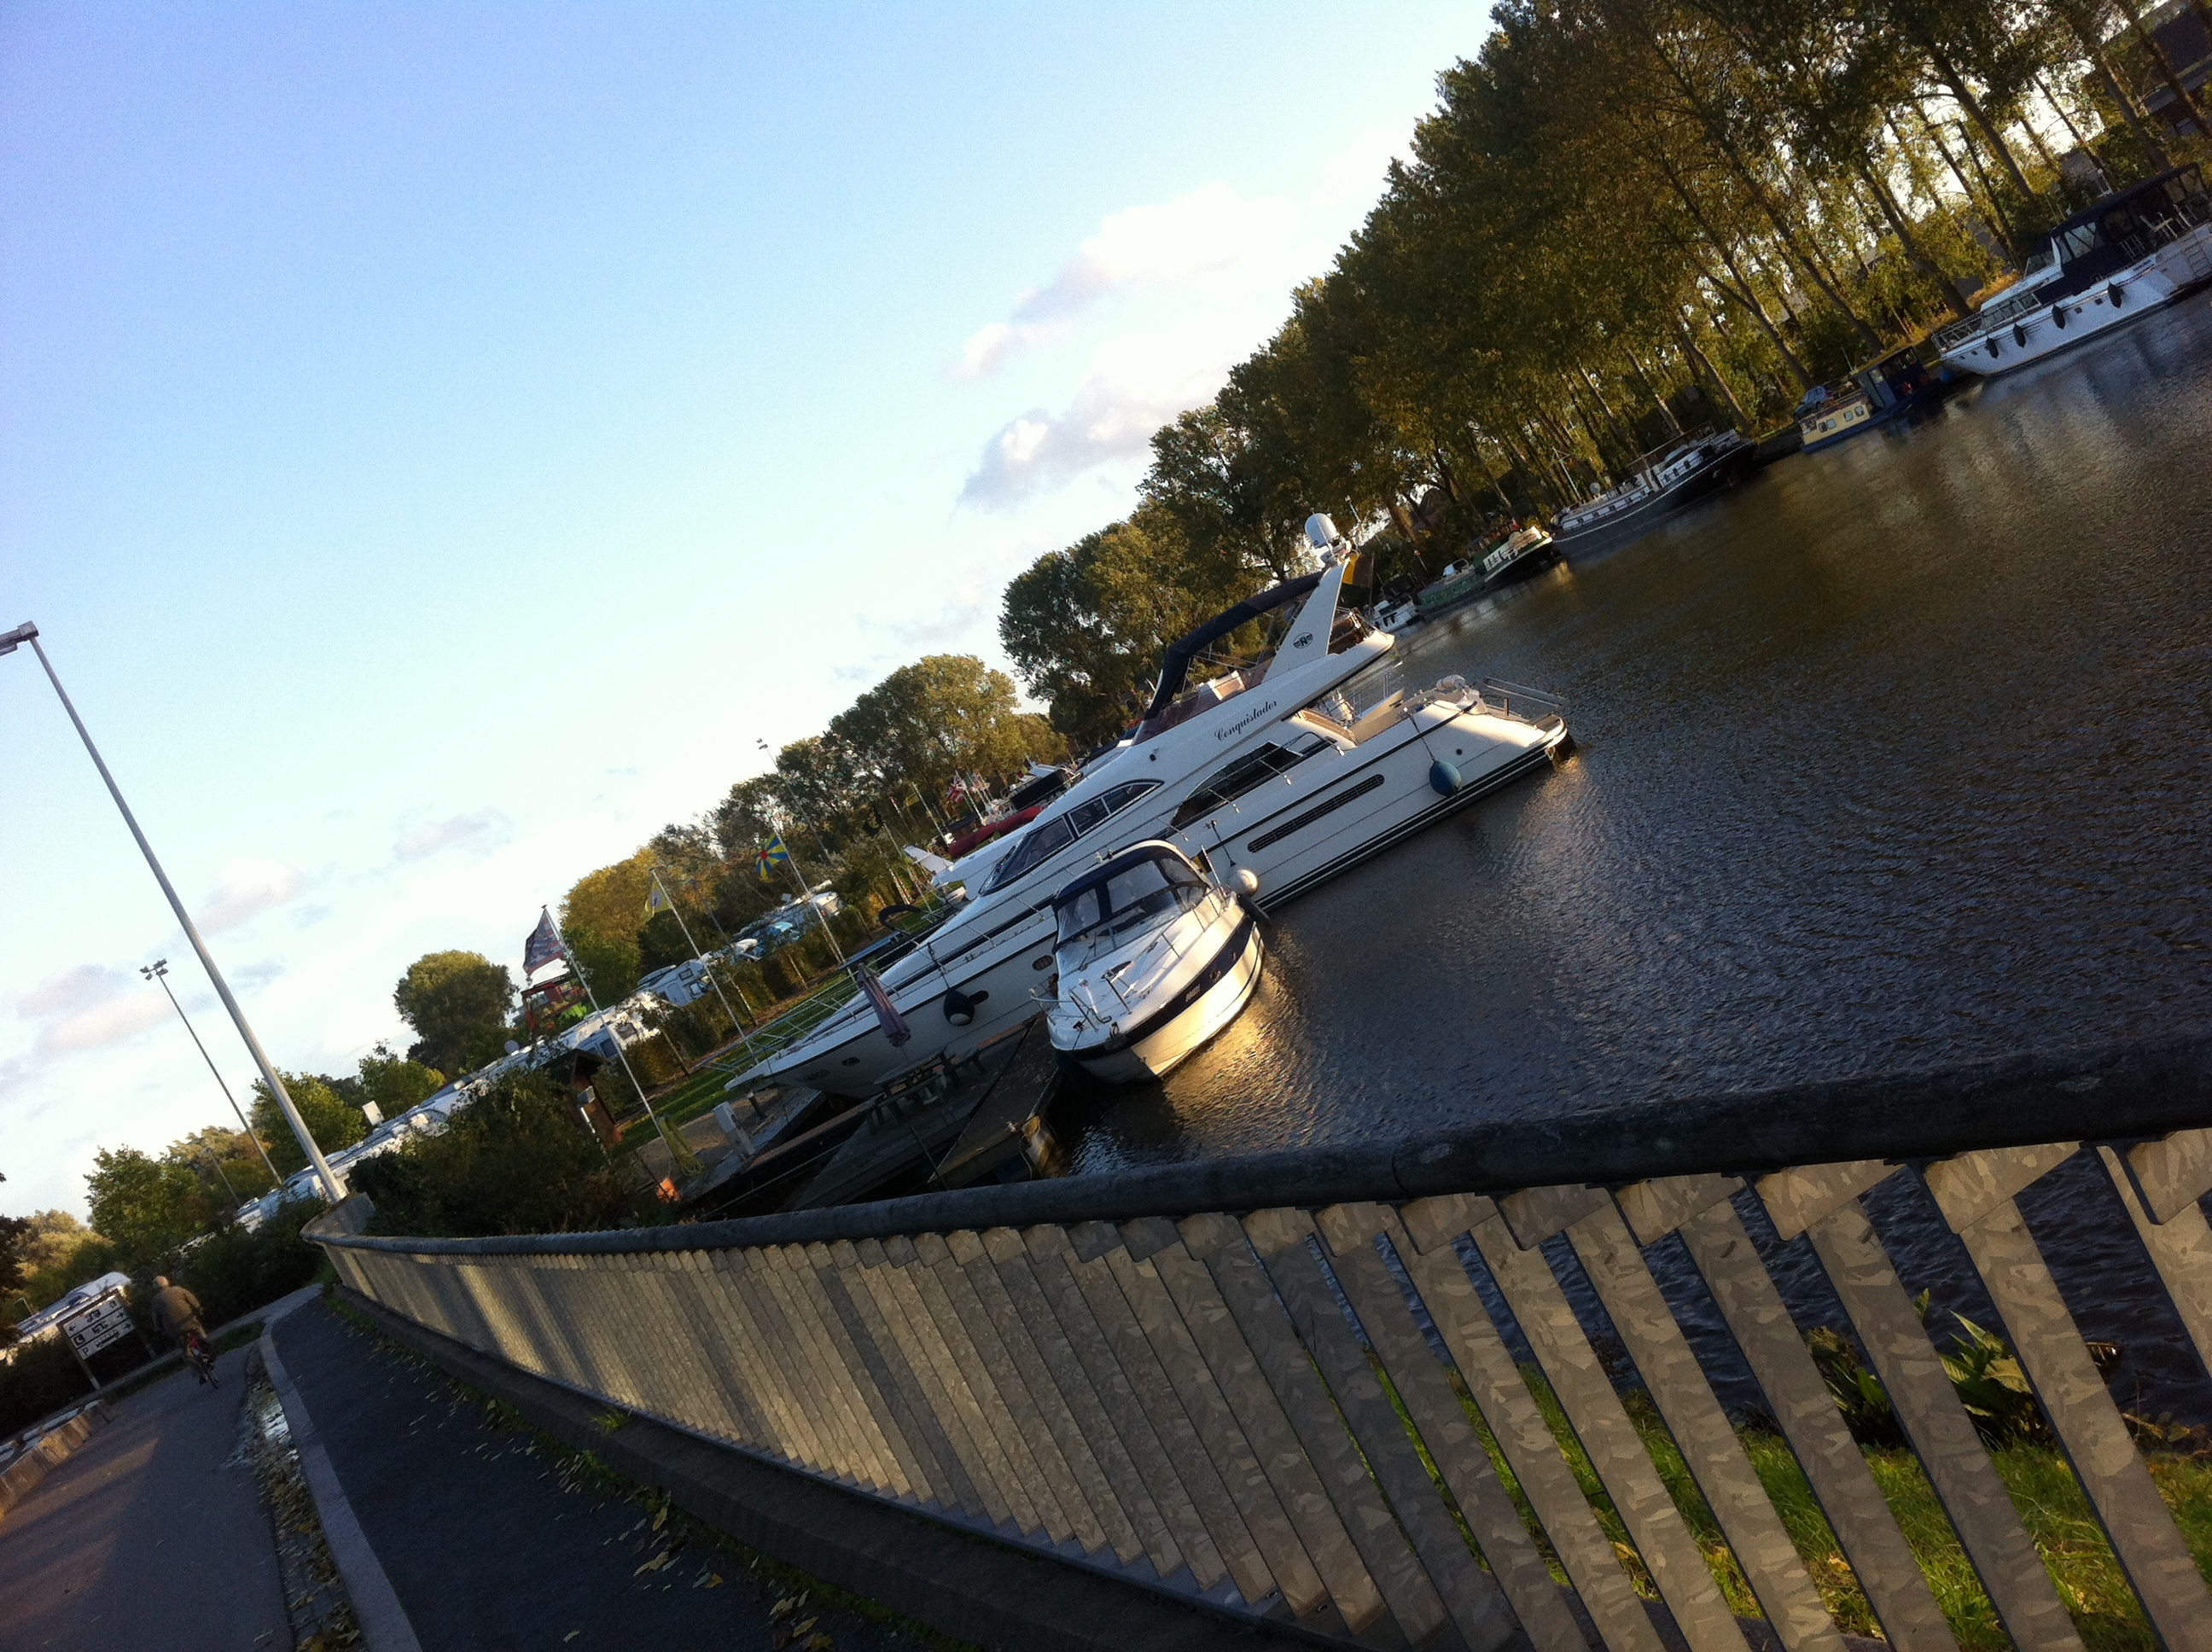 Parked at the yacht club in Brugge.